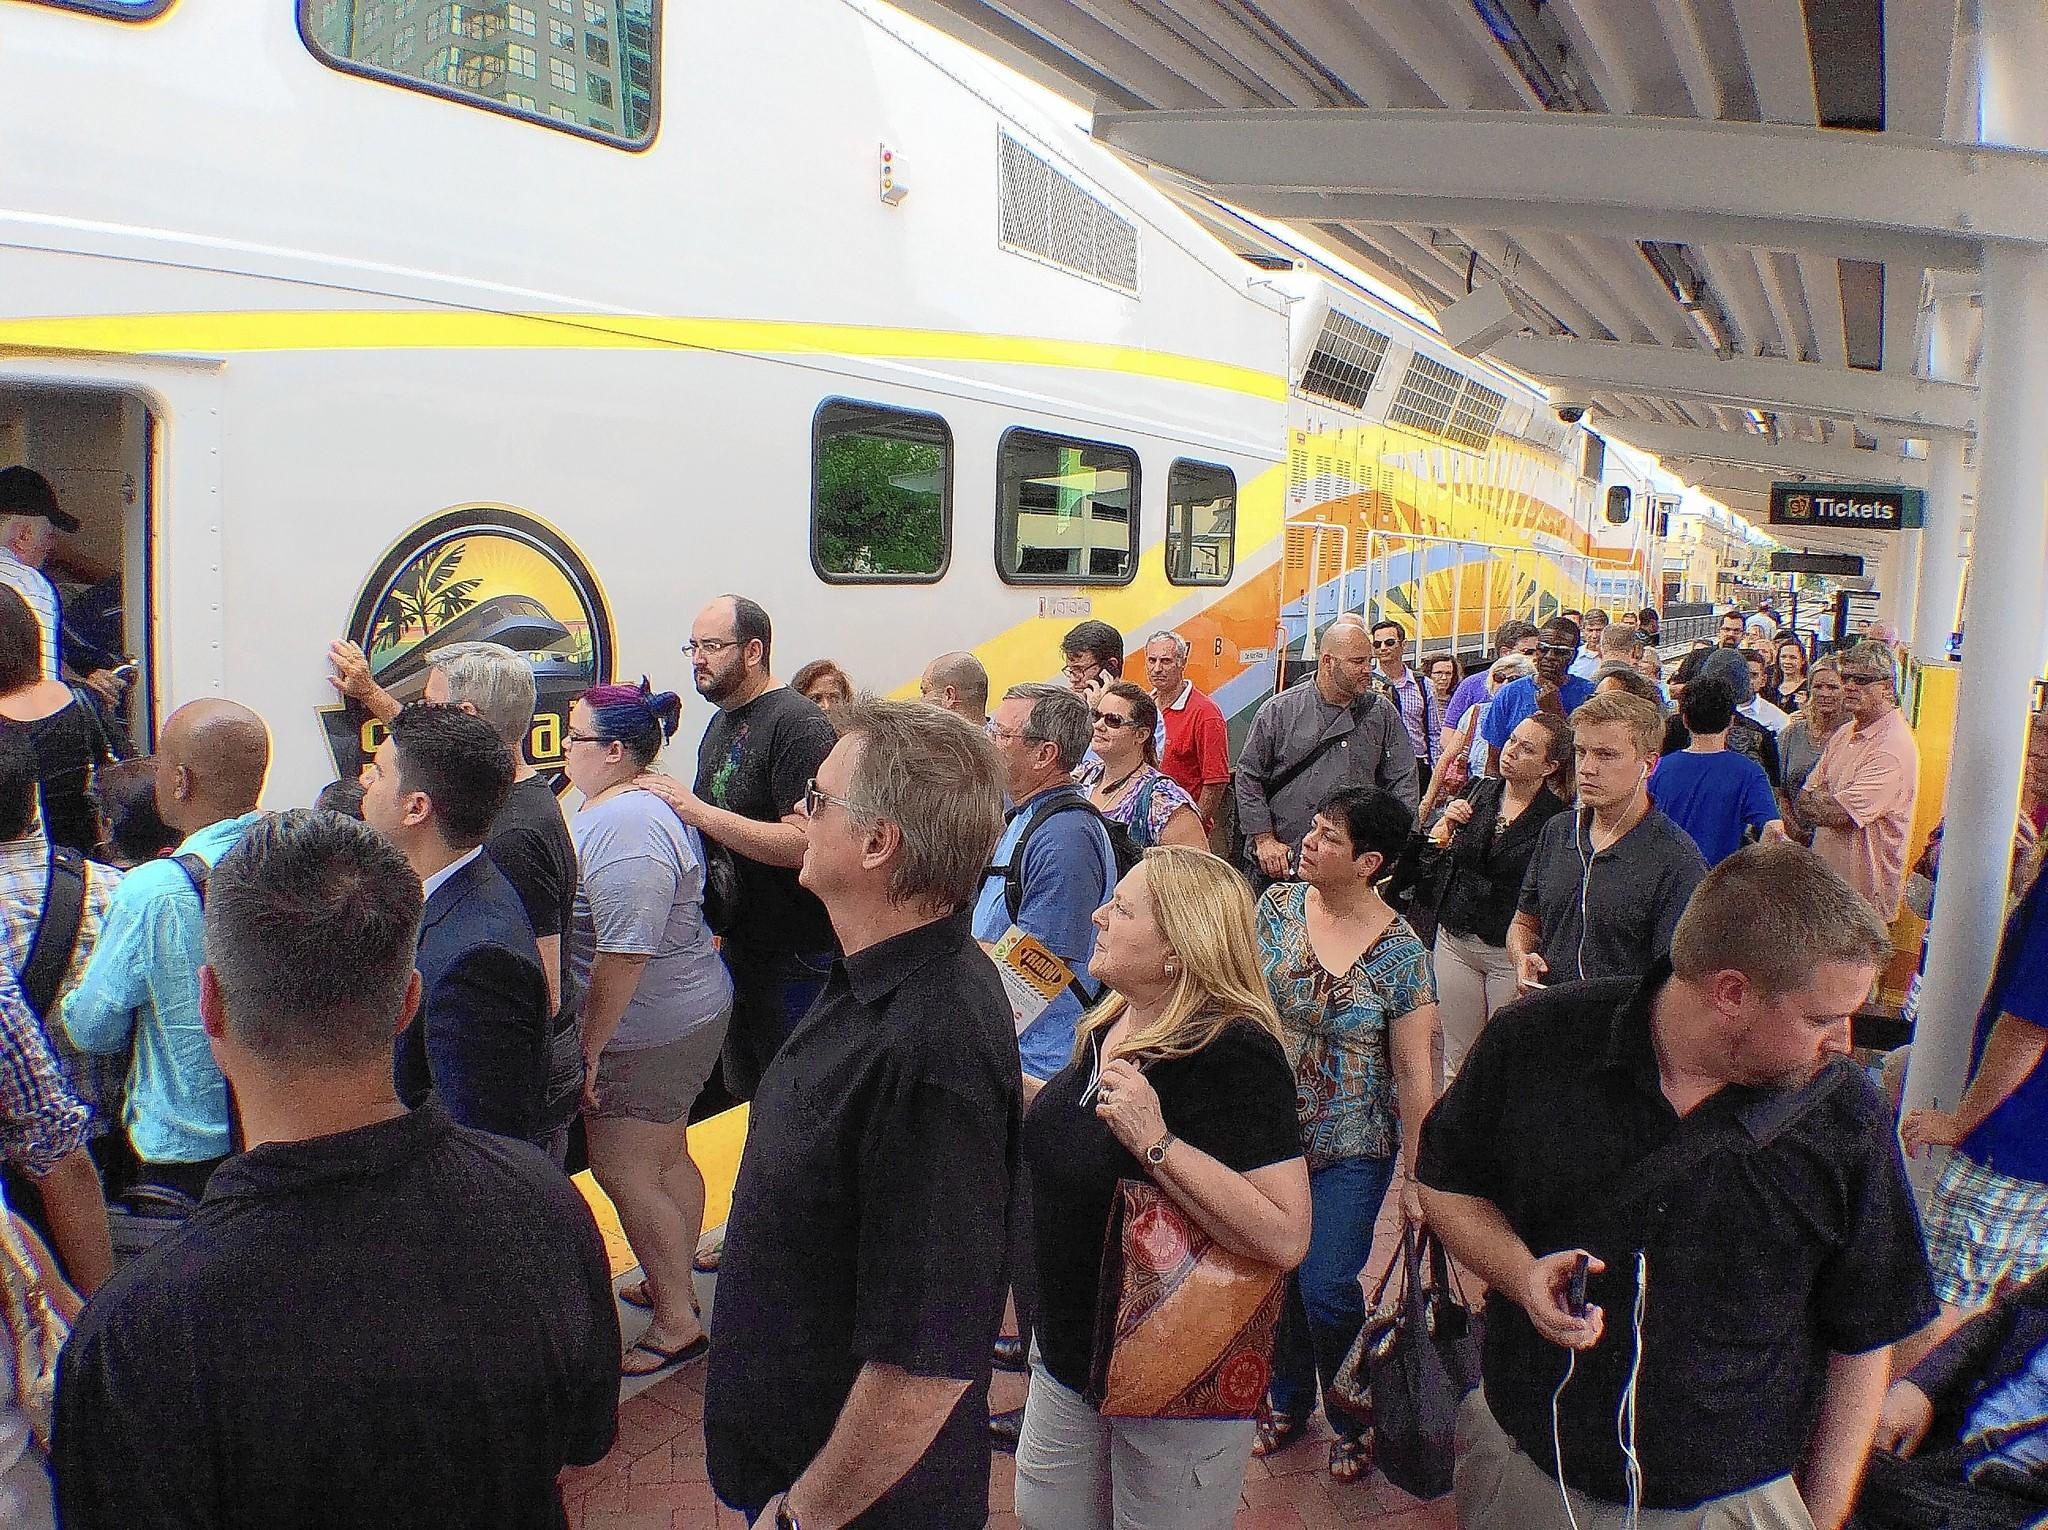 Evening commuter crowd the SunRail platform at the downtown Lynx station.